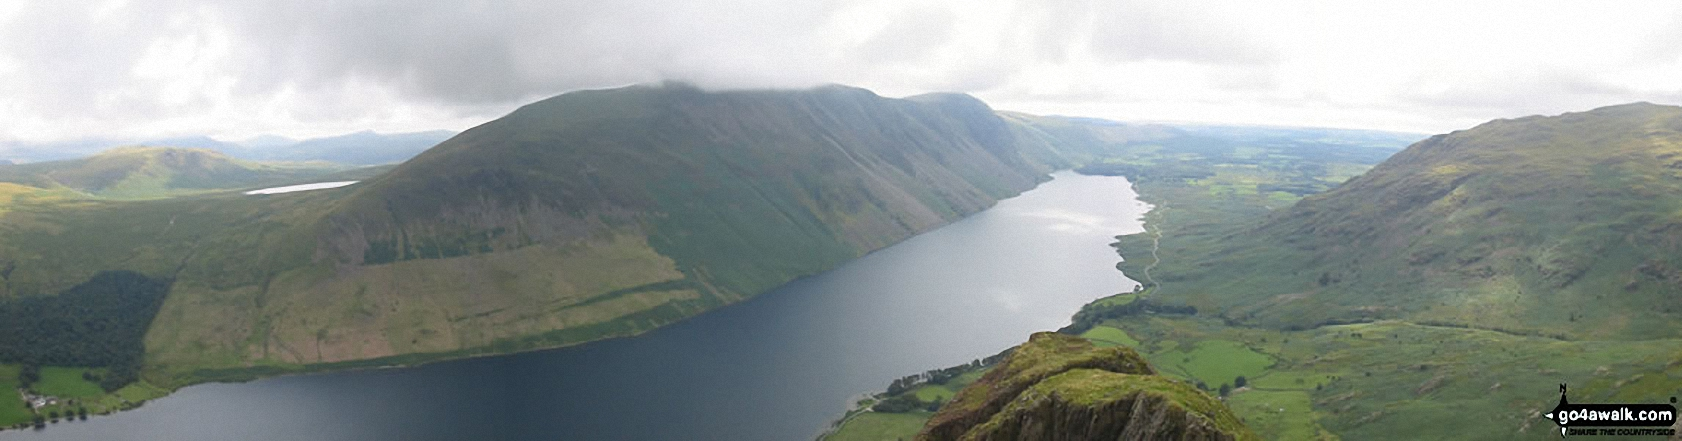 *Illgill Head (left), Wast Water (centre) and Middle Fell (right) from Yewbarrow